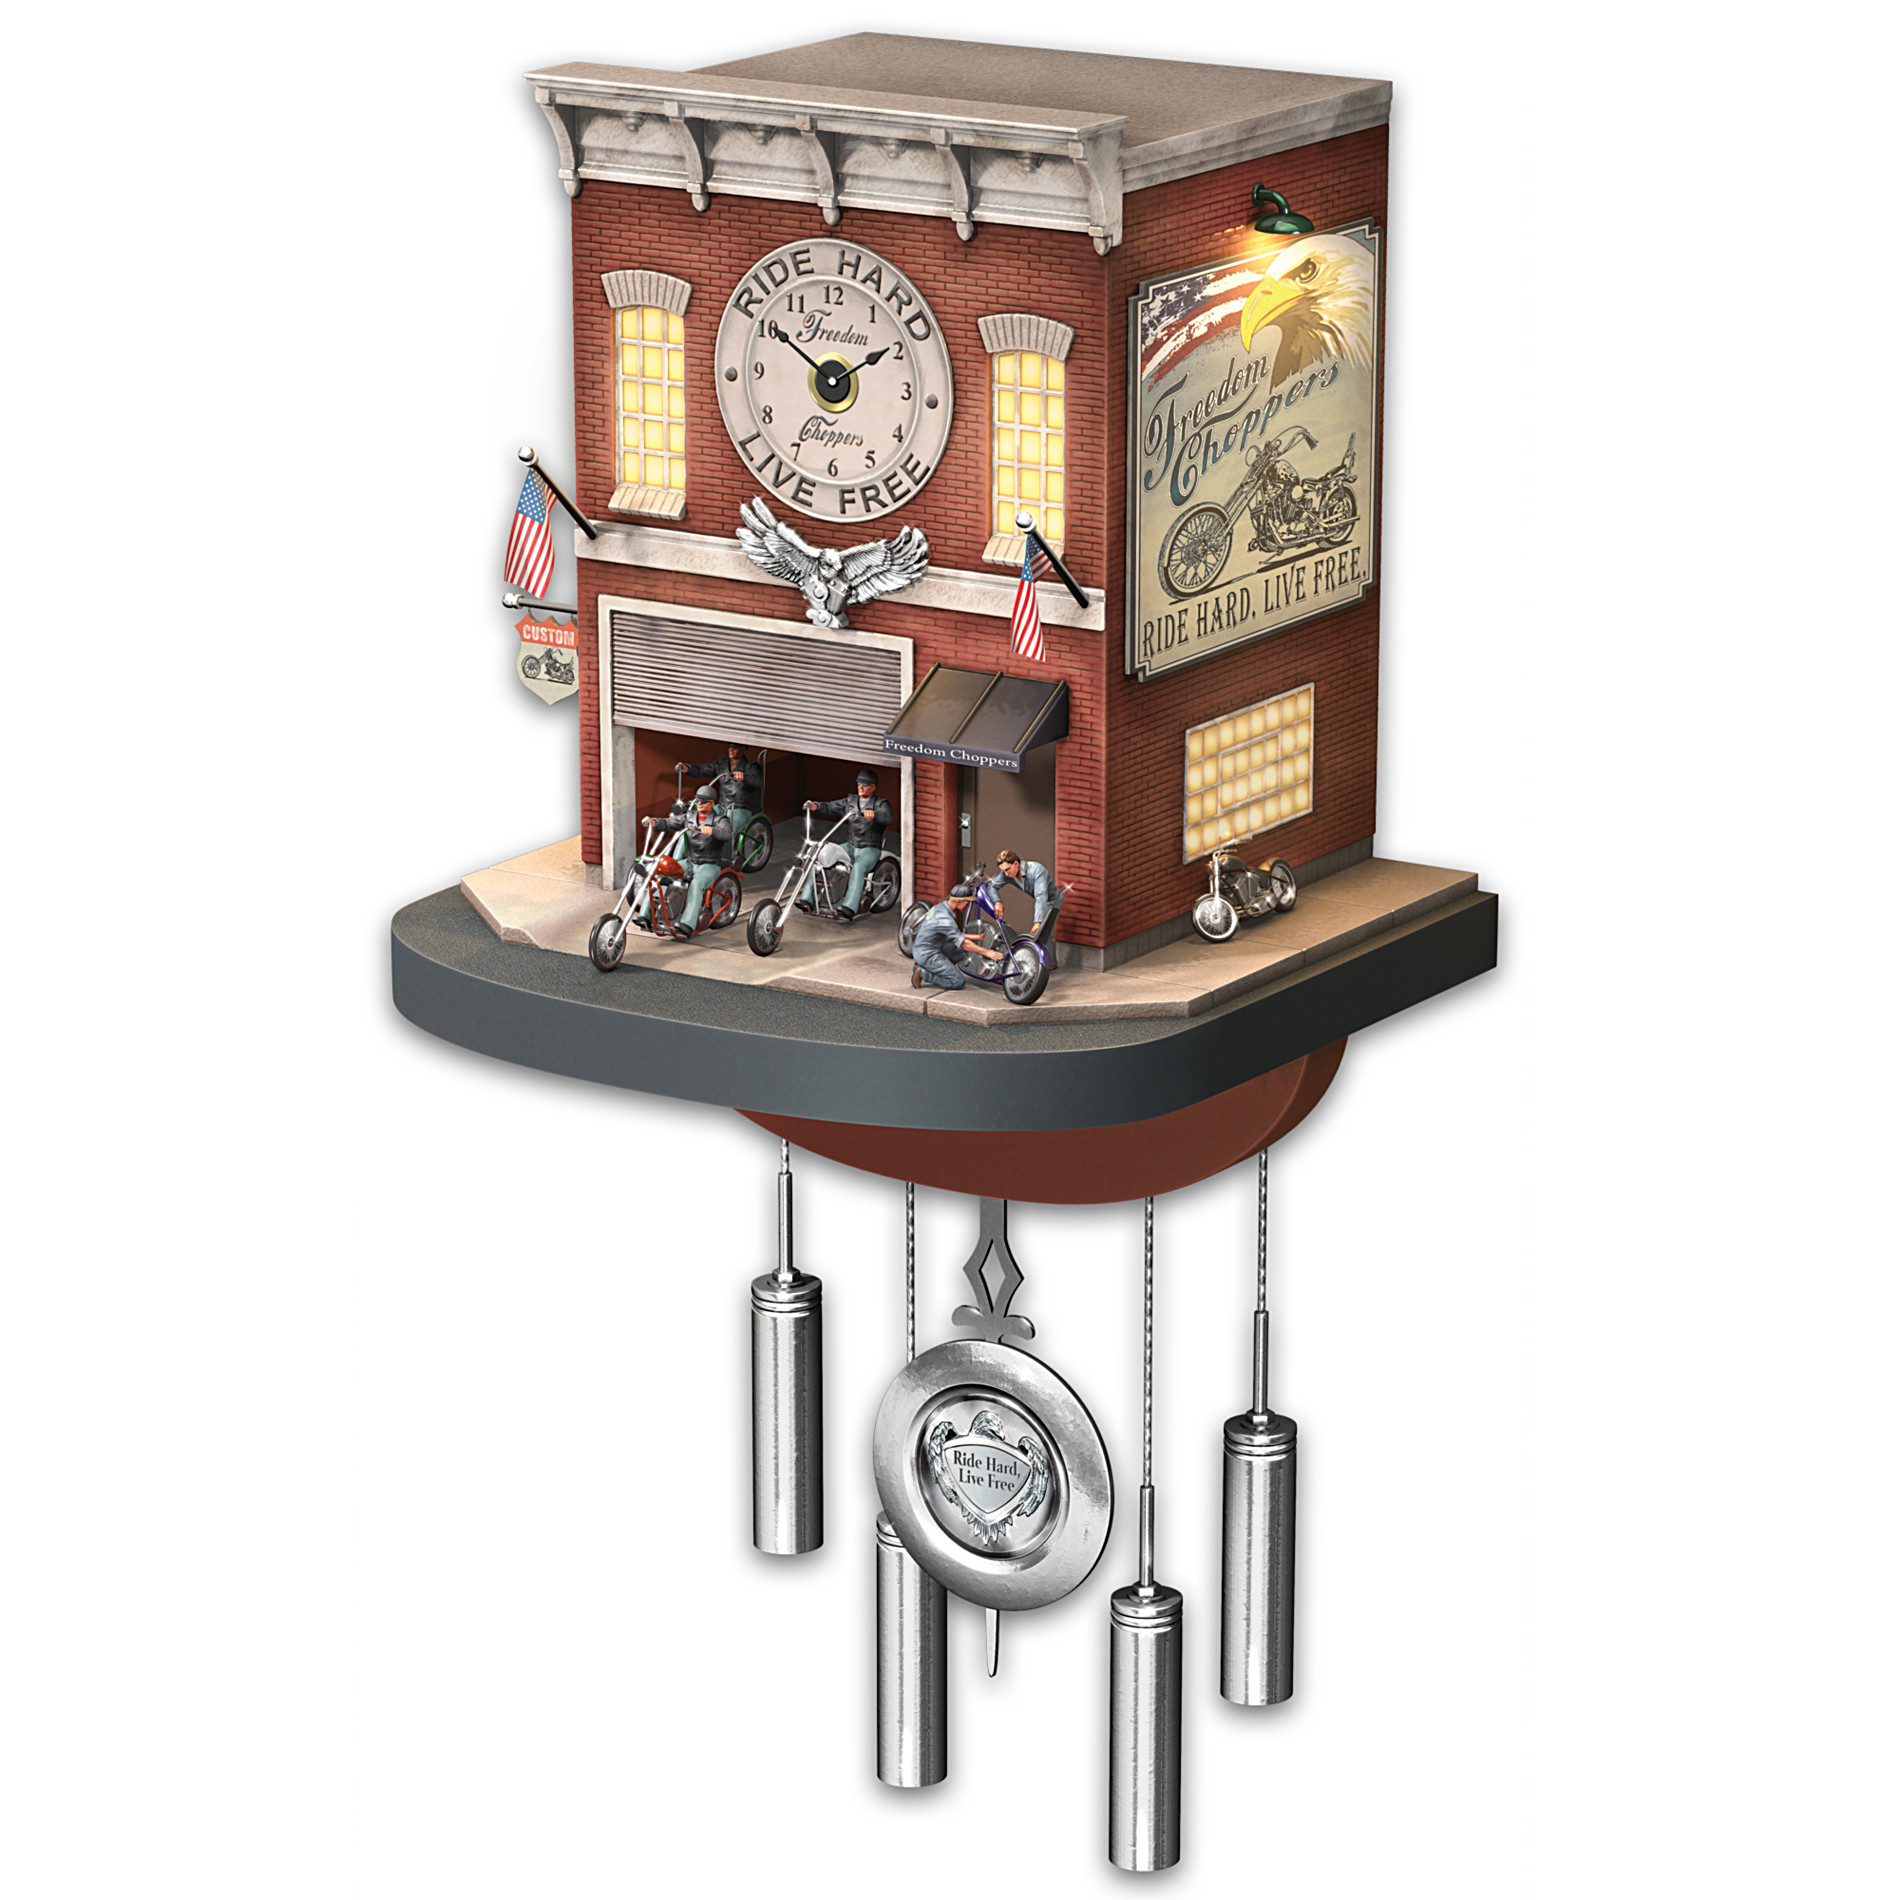 The bradford exchange freedom rider eagle and chopper figurine motorcycle gift from - Motorcycle cuckoo clock ...